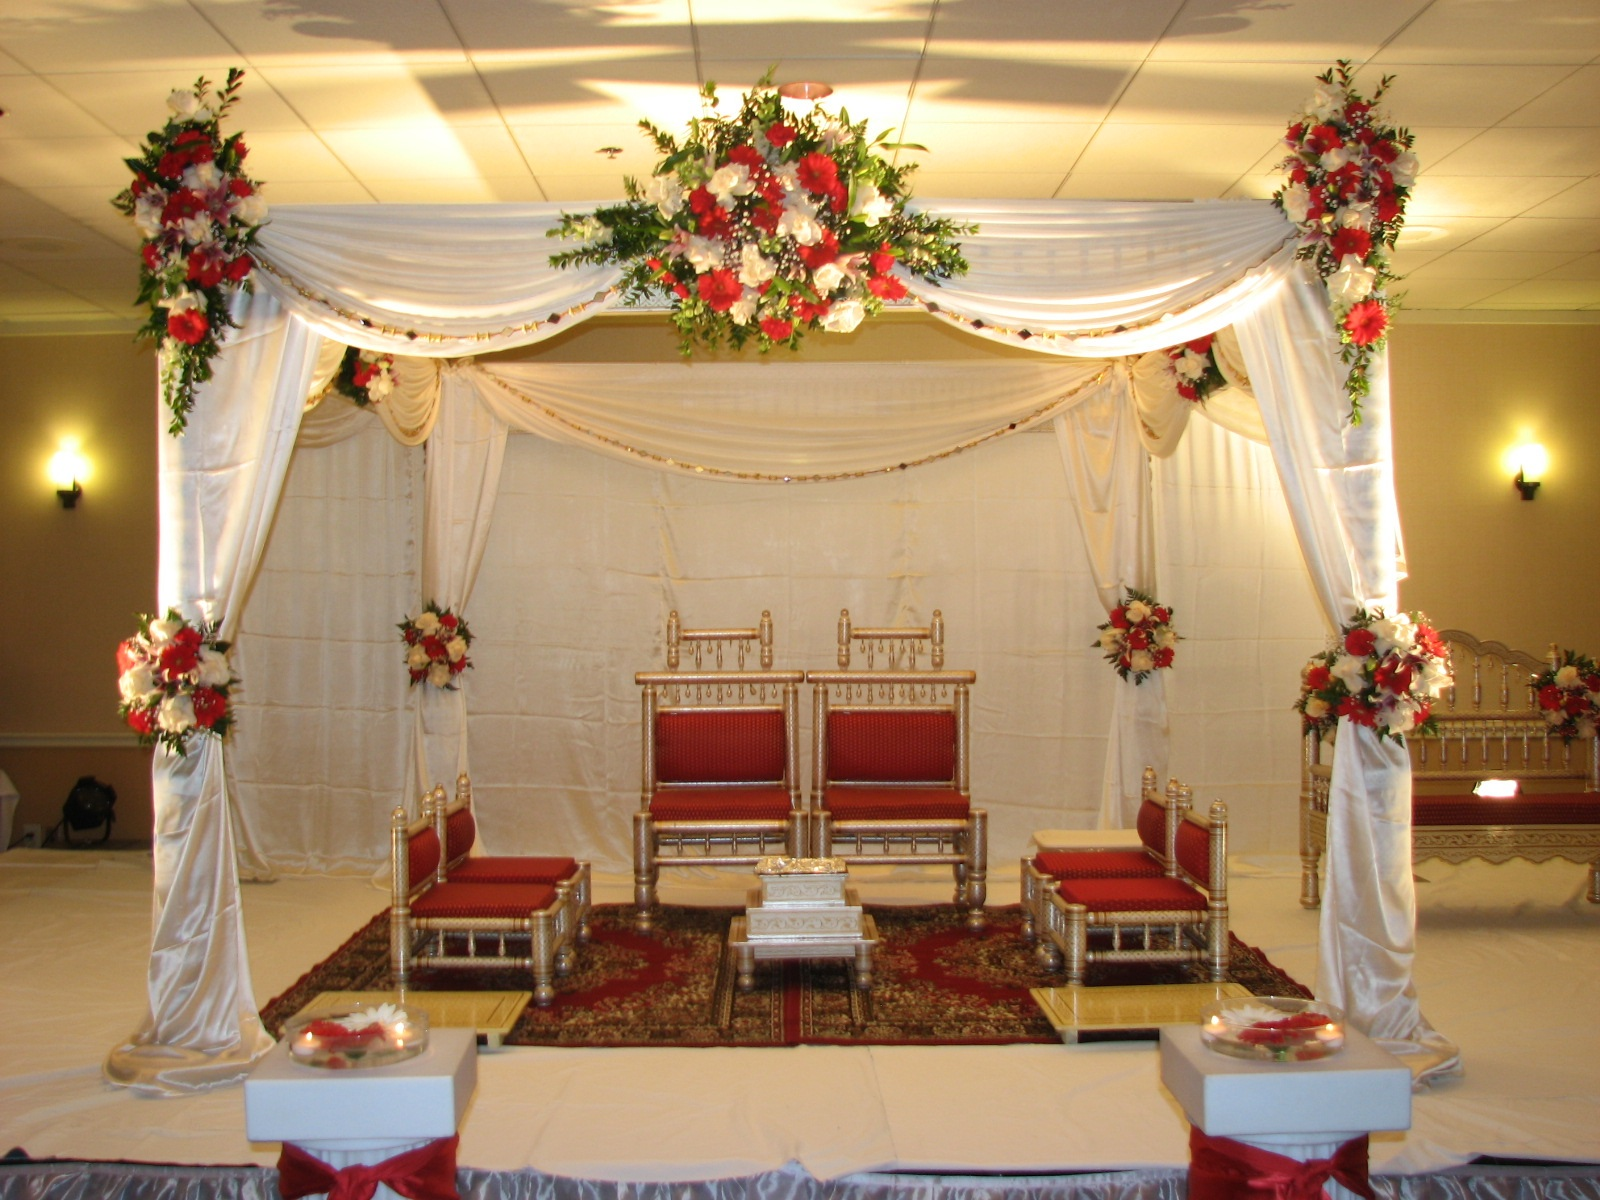 chair covers for rent toronto bed target indian wedding decorations tampa | bay florist